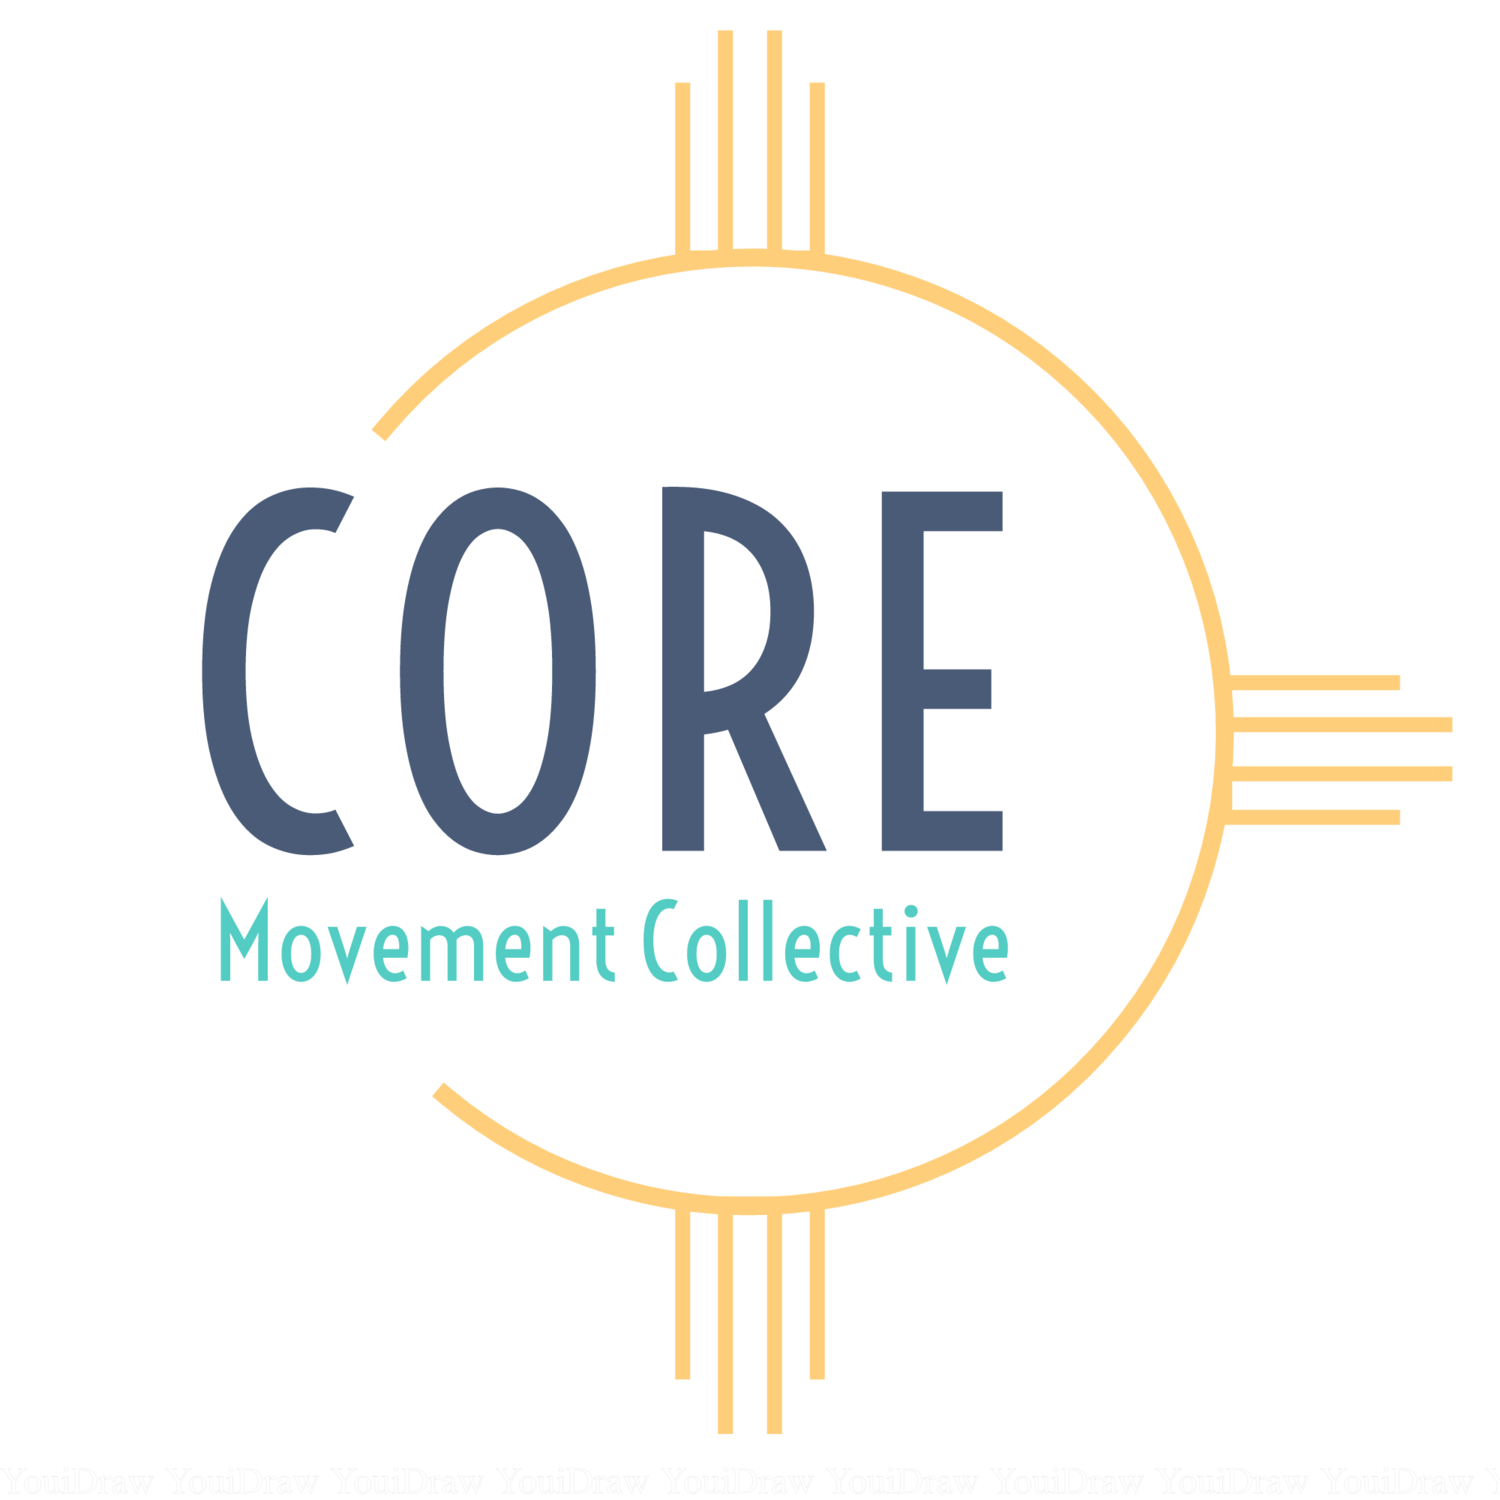 Core Movement Collective